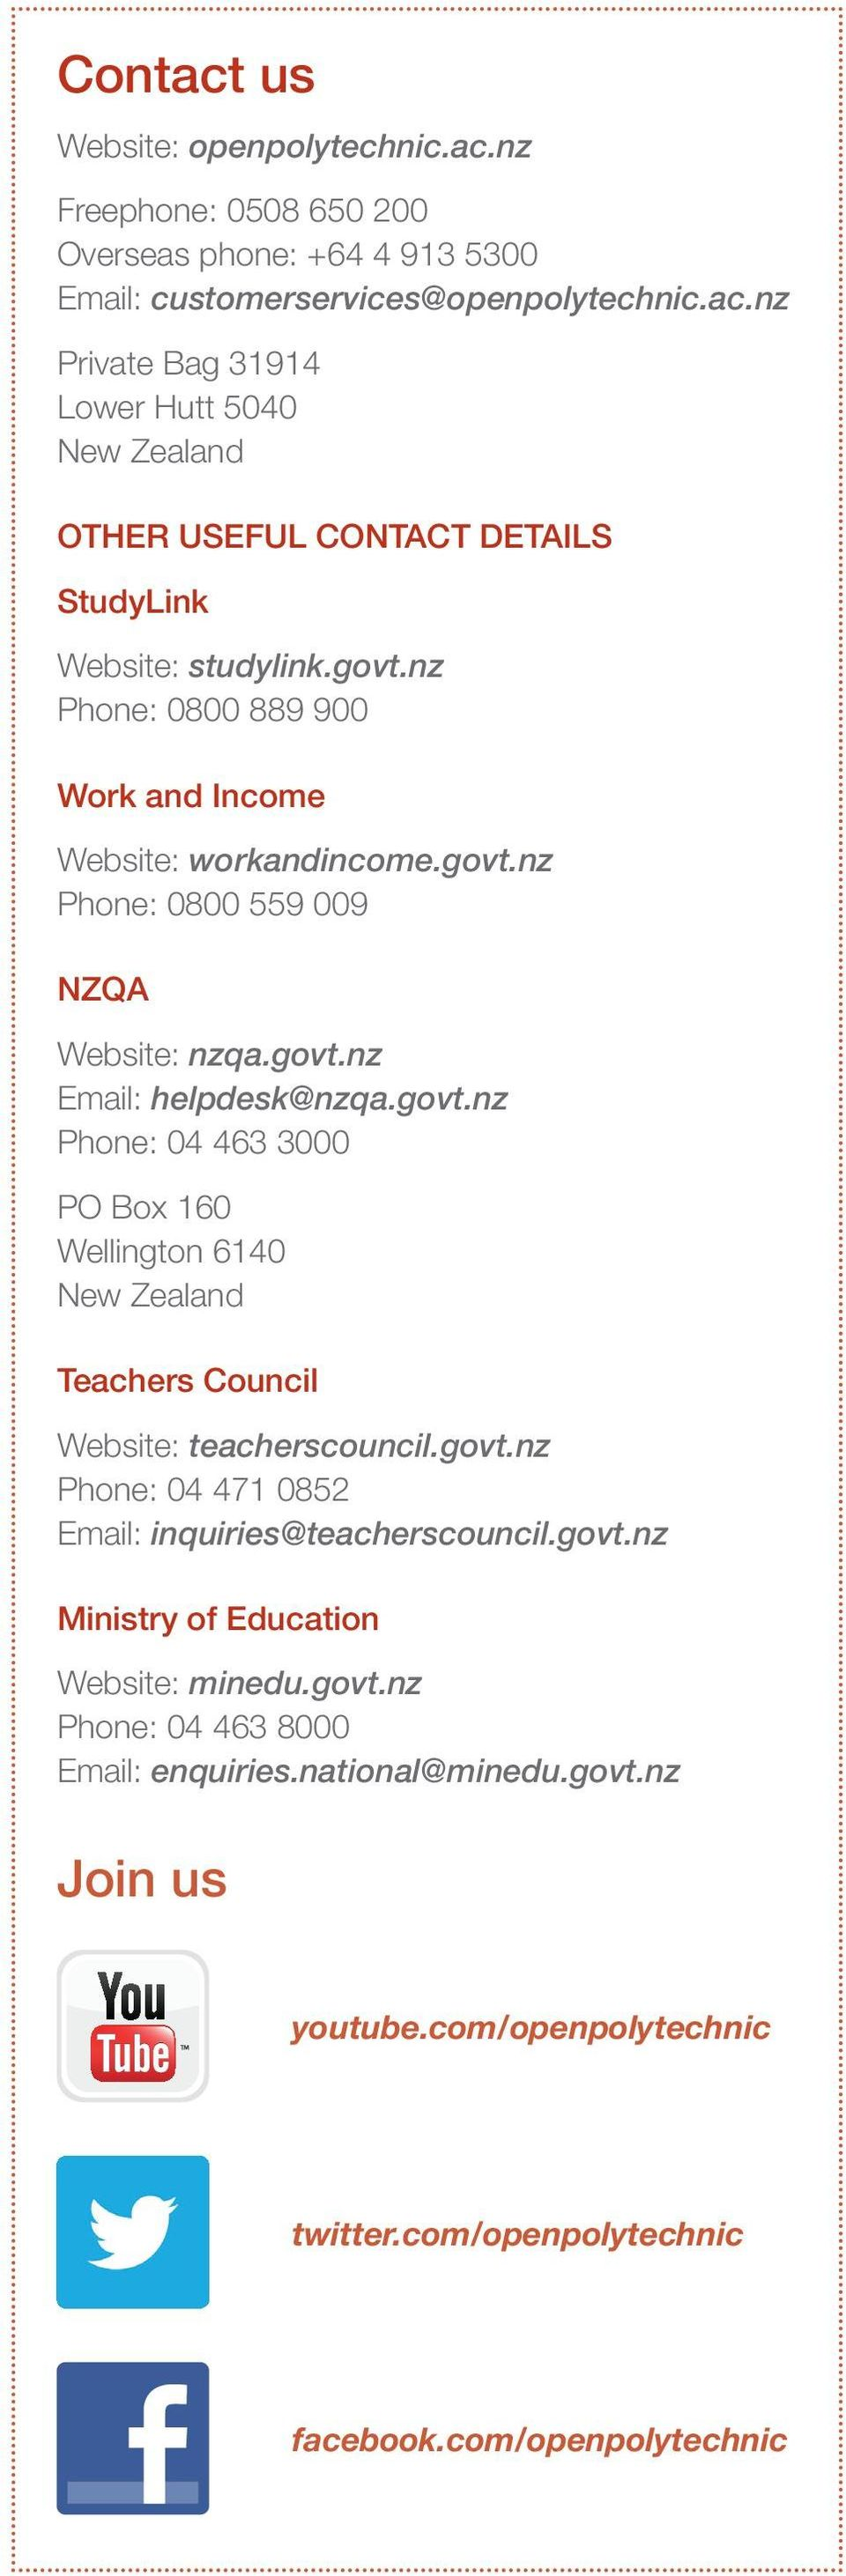 govt.nz Phone: 04 471 0852 Email: inquiries@teacherscouncil.govt.nz Ministry of Education Website: minedu.govt.nz Phone: 04 463 8000 Email: enquiries.national@minedu.govt.nz Join us youtube.